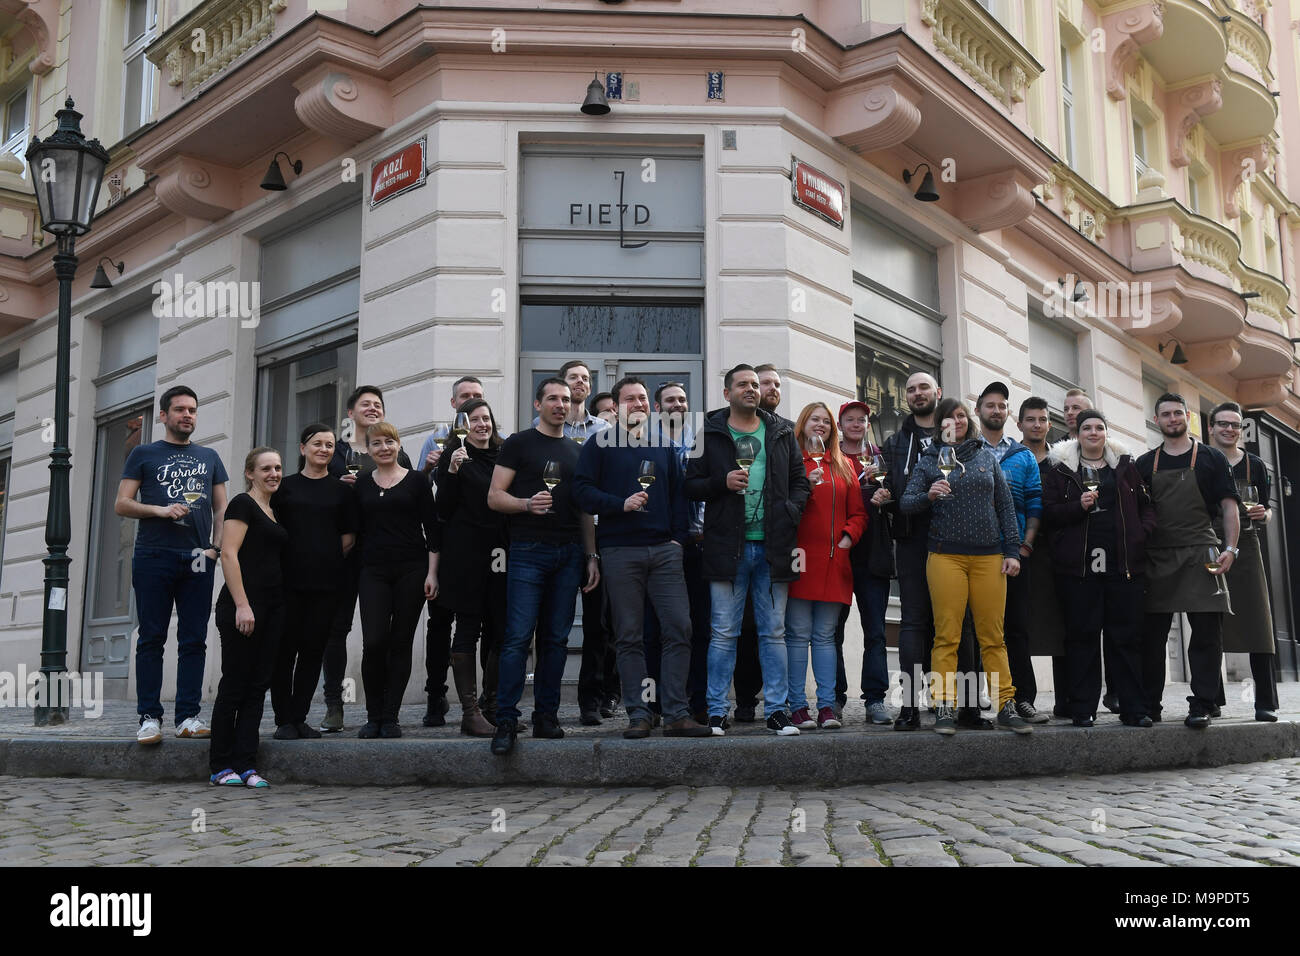 Prague, Czech Republic. 27th Mar, 2018. Two restaurants in Prague with Czech chefs, La Degustation Boheme Bourgeoise and Field, have defended their Michelin stars, while Alcron has lost it in this year. On the photo is seen Chef of Field restaurant Radek Kasparek with his employees in front of the restaurant in Prague, Czech Republic, on March 27, 2018. Credit: Michal Krumphanzl/CTK Photo/Alamy Live News - Stock Image